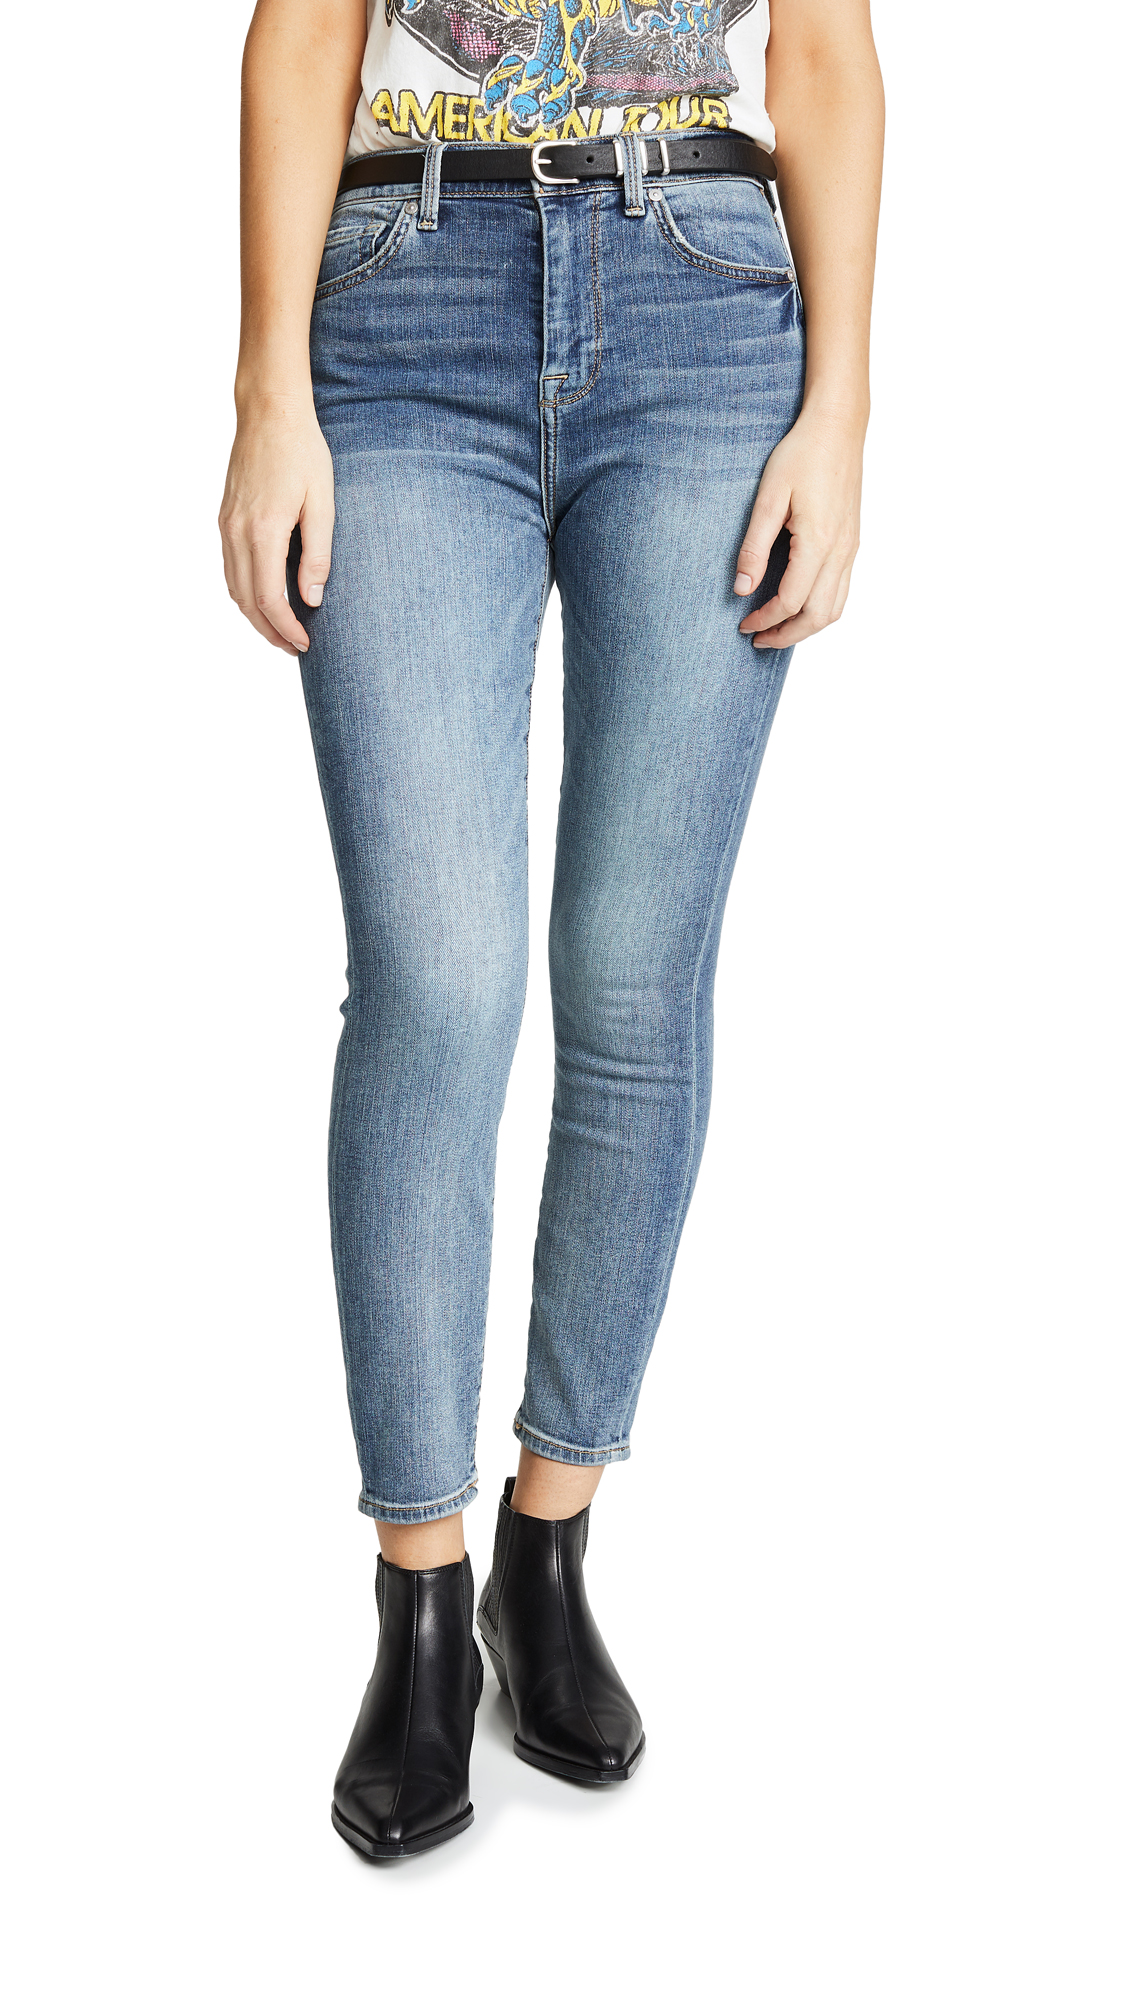 7 For All Mankind B(air) Authentic Fortune Jeans - B(Air) Authentic Fortune